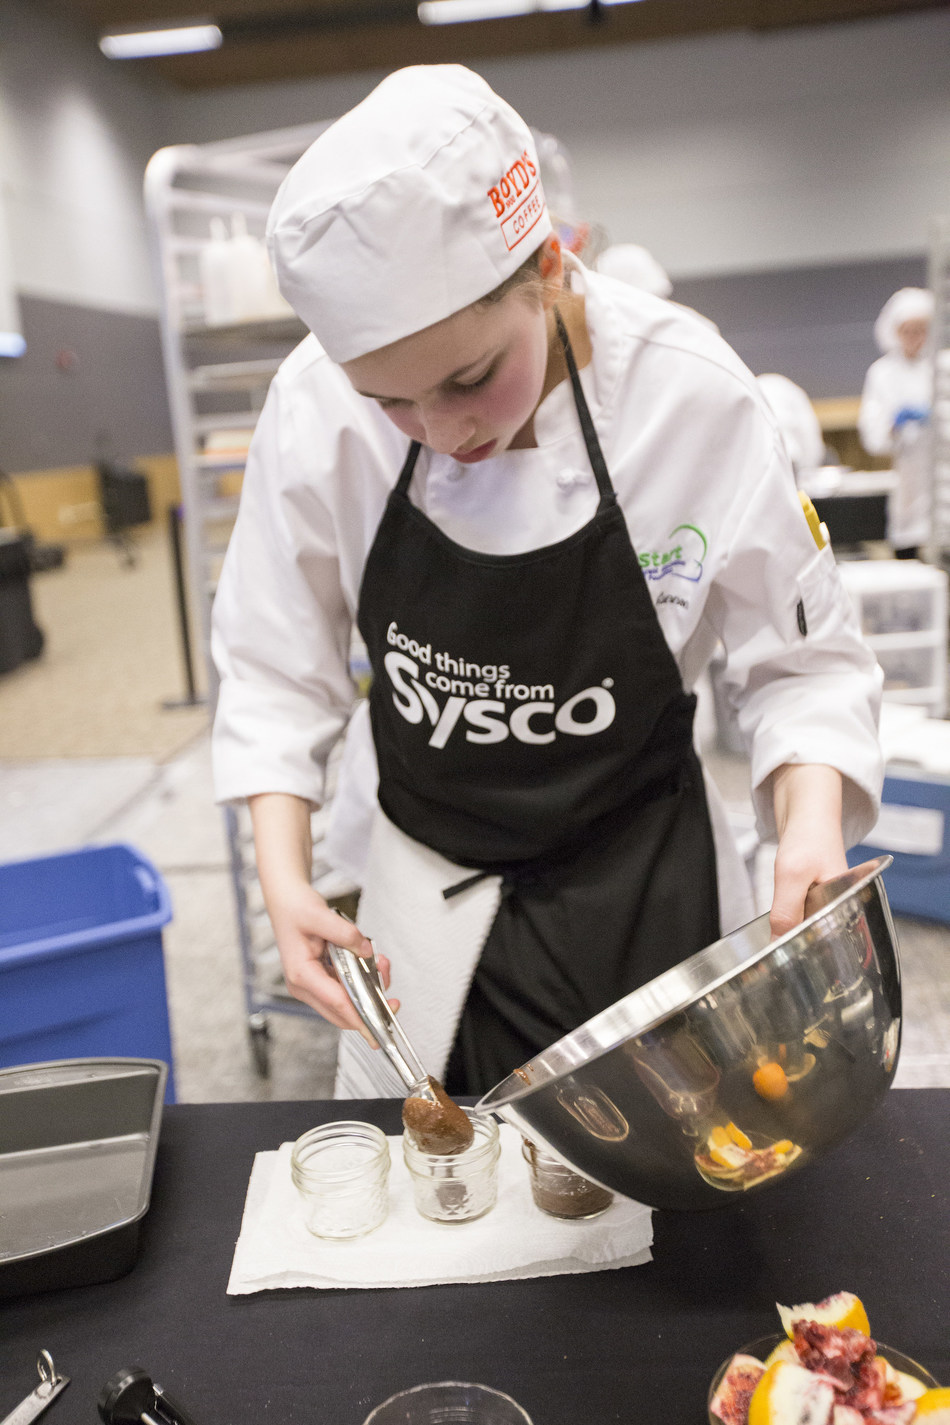 Local Teens Face Off in Premier Youth Culinary, Restaurant Management Competition - 2017 Washington ProStart Invitational